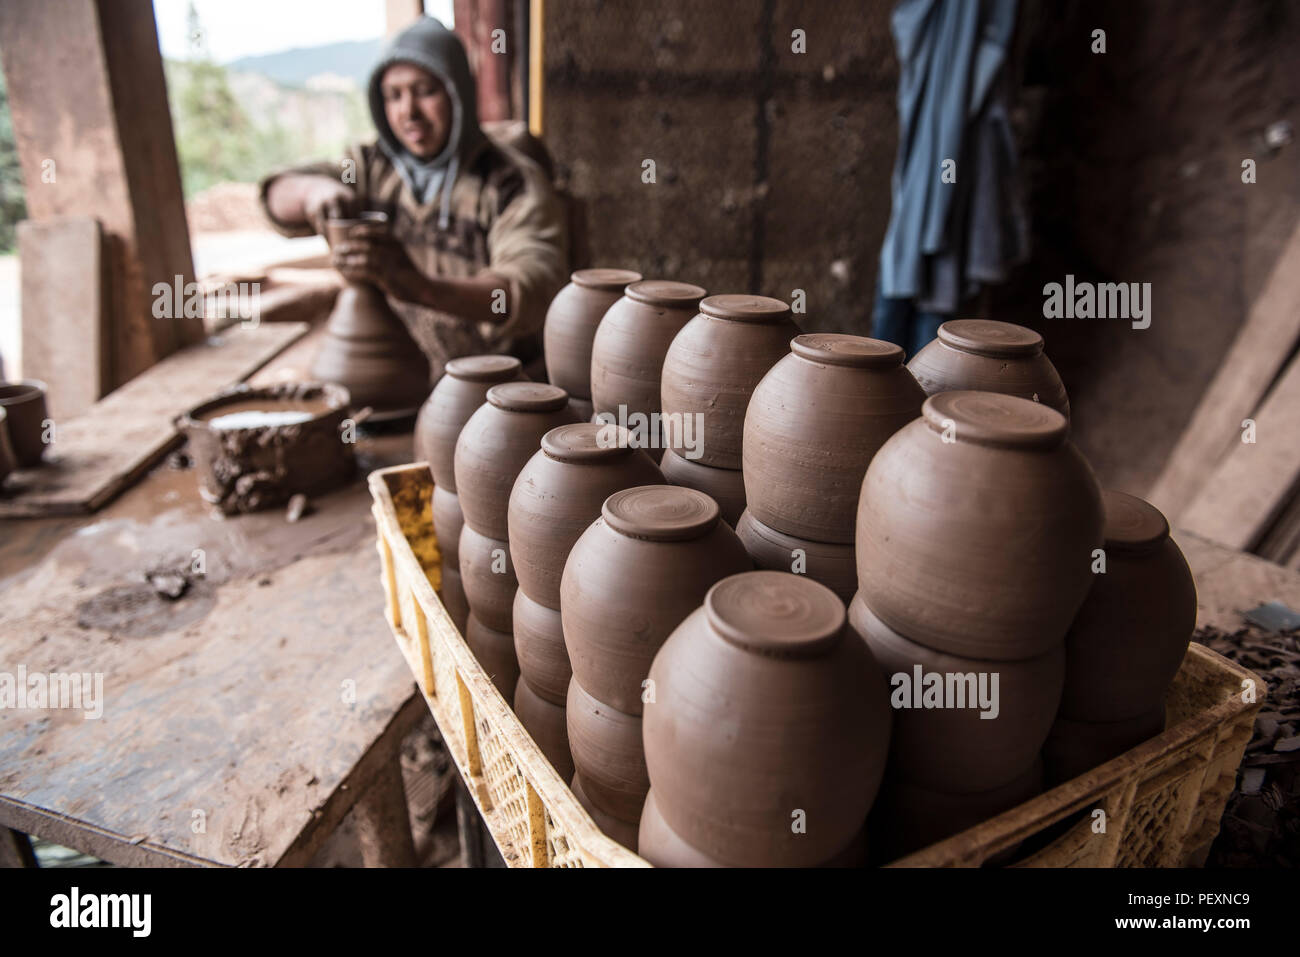 Pottery being made near Marrakesh, Morocco - Stock Image